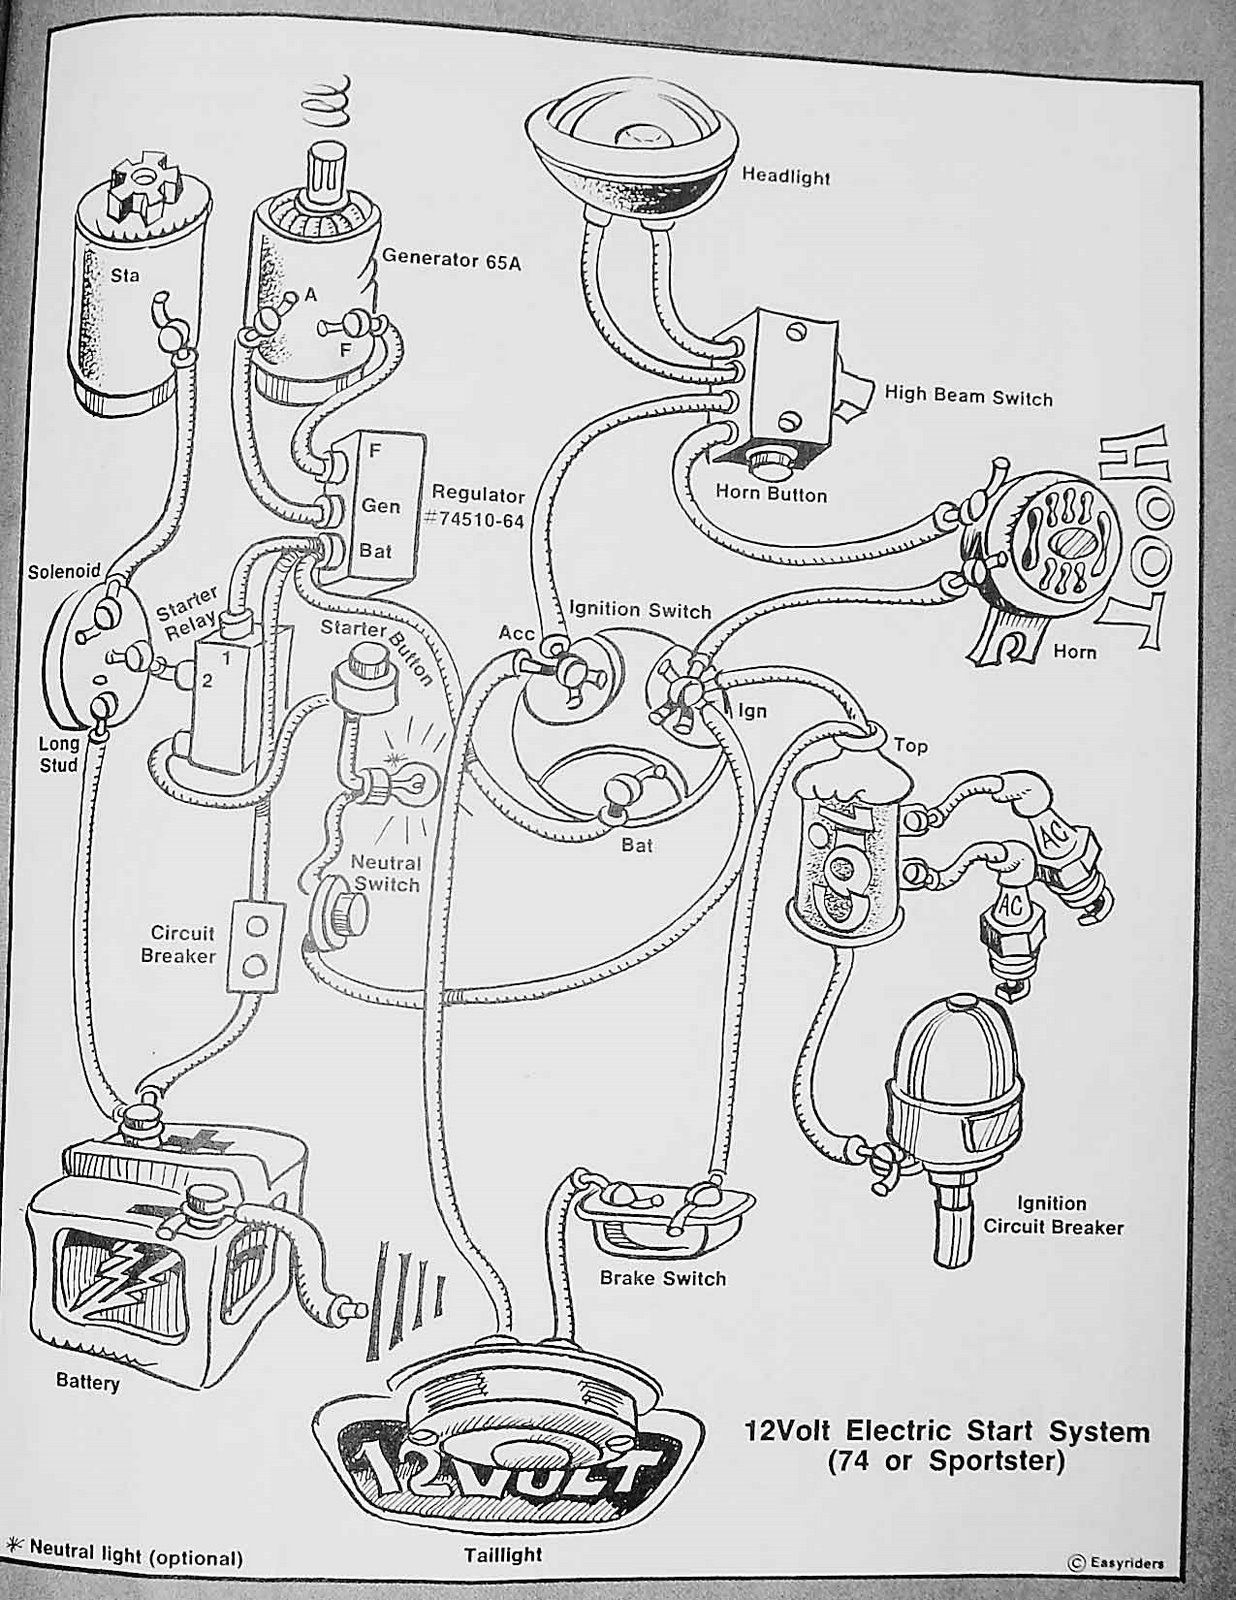 Harley Wiring Diagrams | Biltwell Inc. | bike stuff ... on